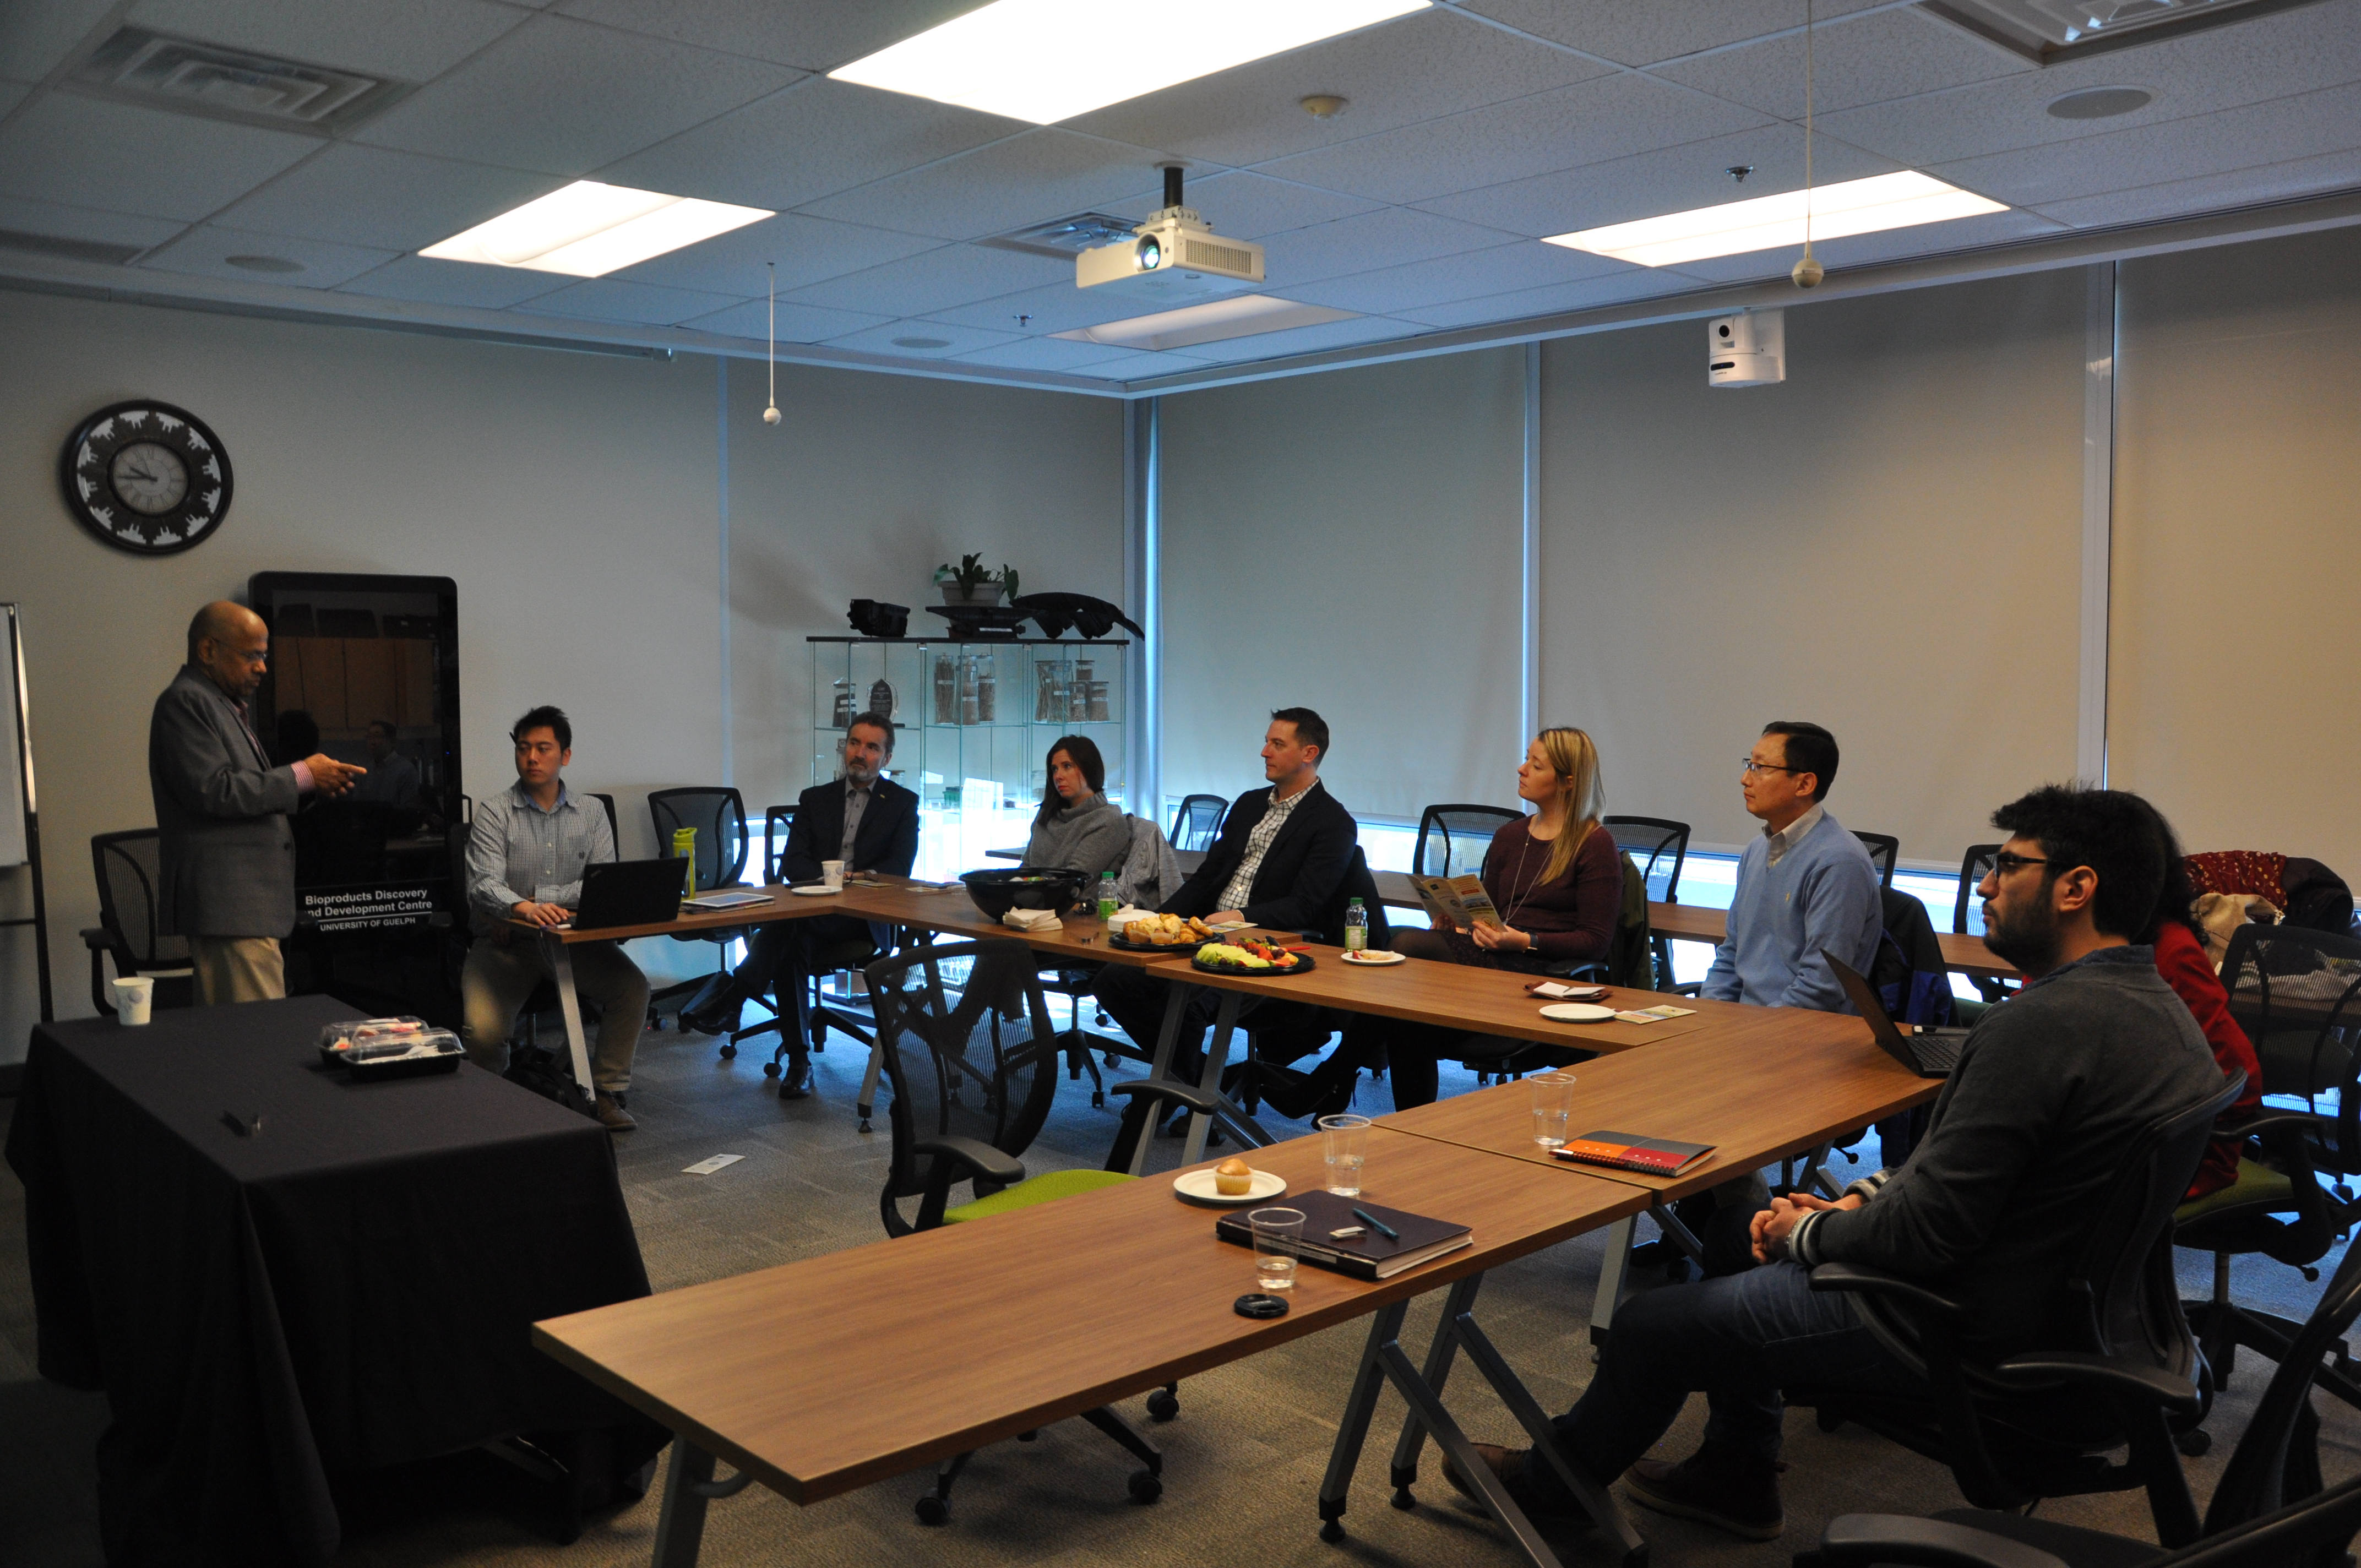 Representatives from BIOX Corp., Nak Paik and Alan Rickard, visiting the BDDC